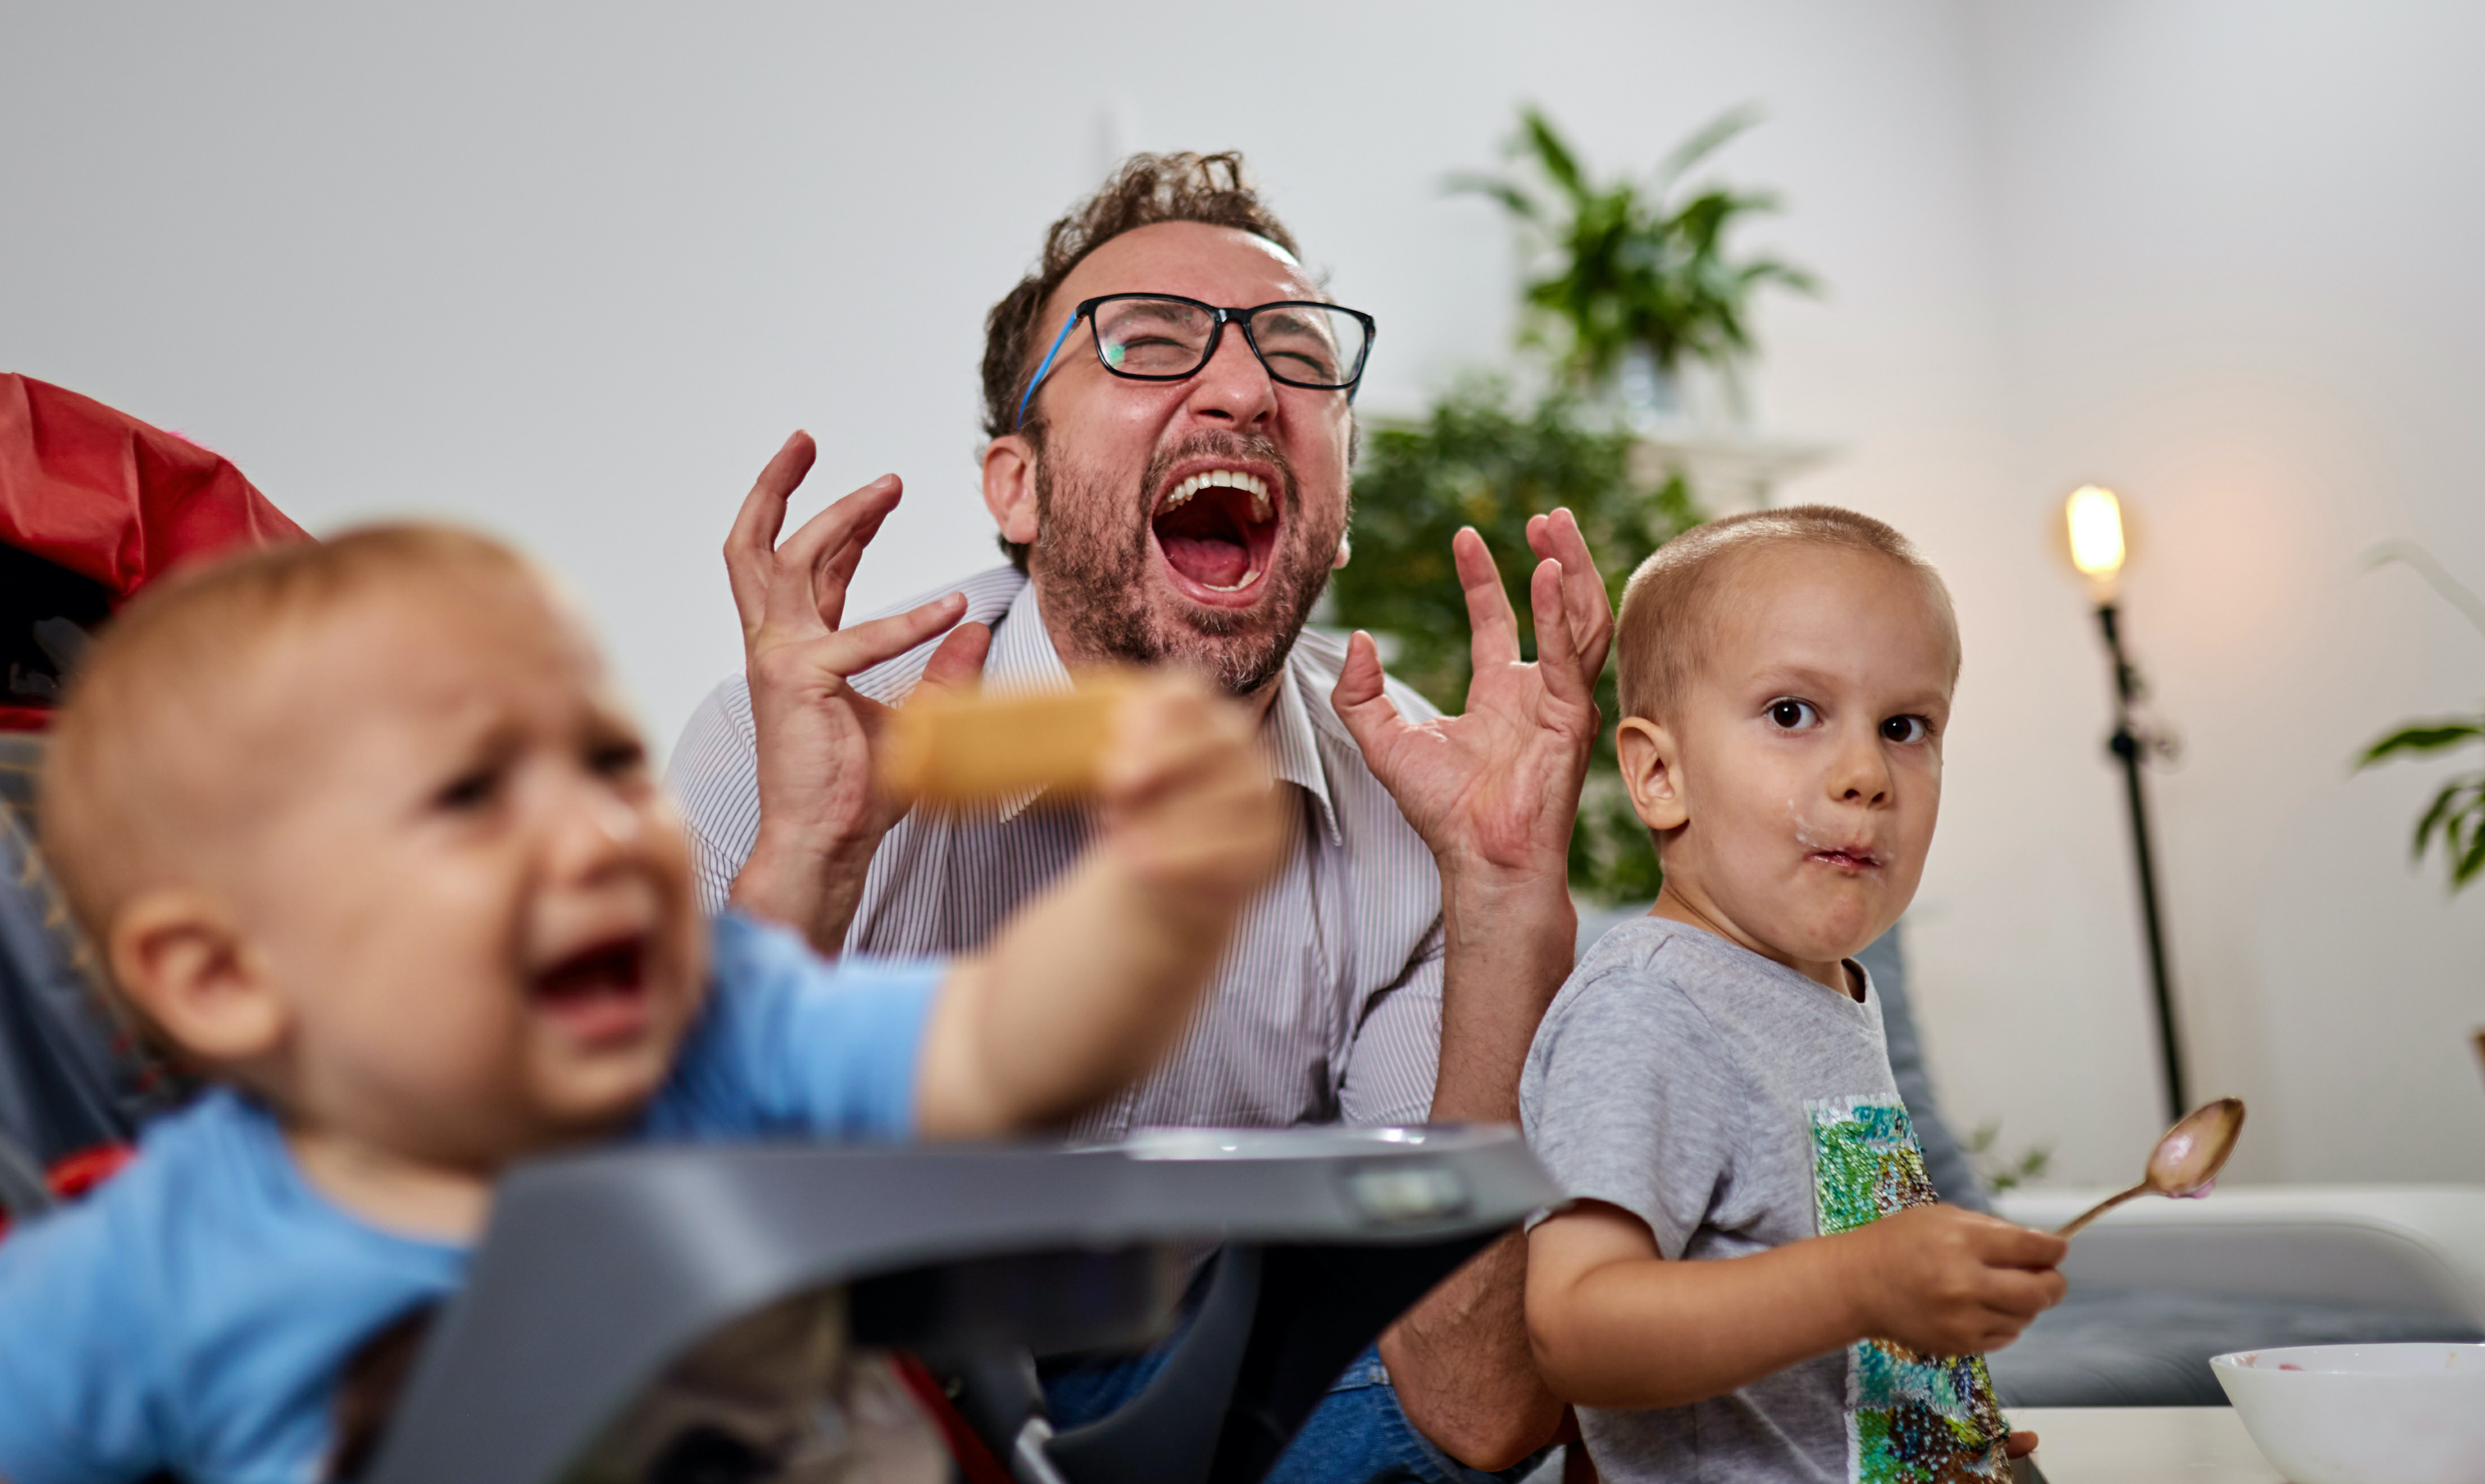 How to Handle Your Anger at Your Child